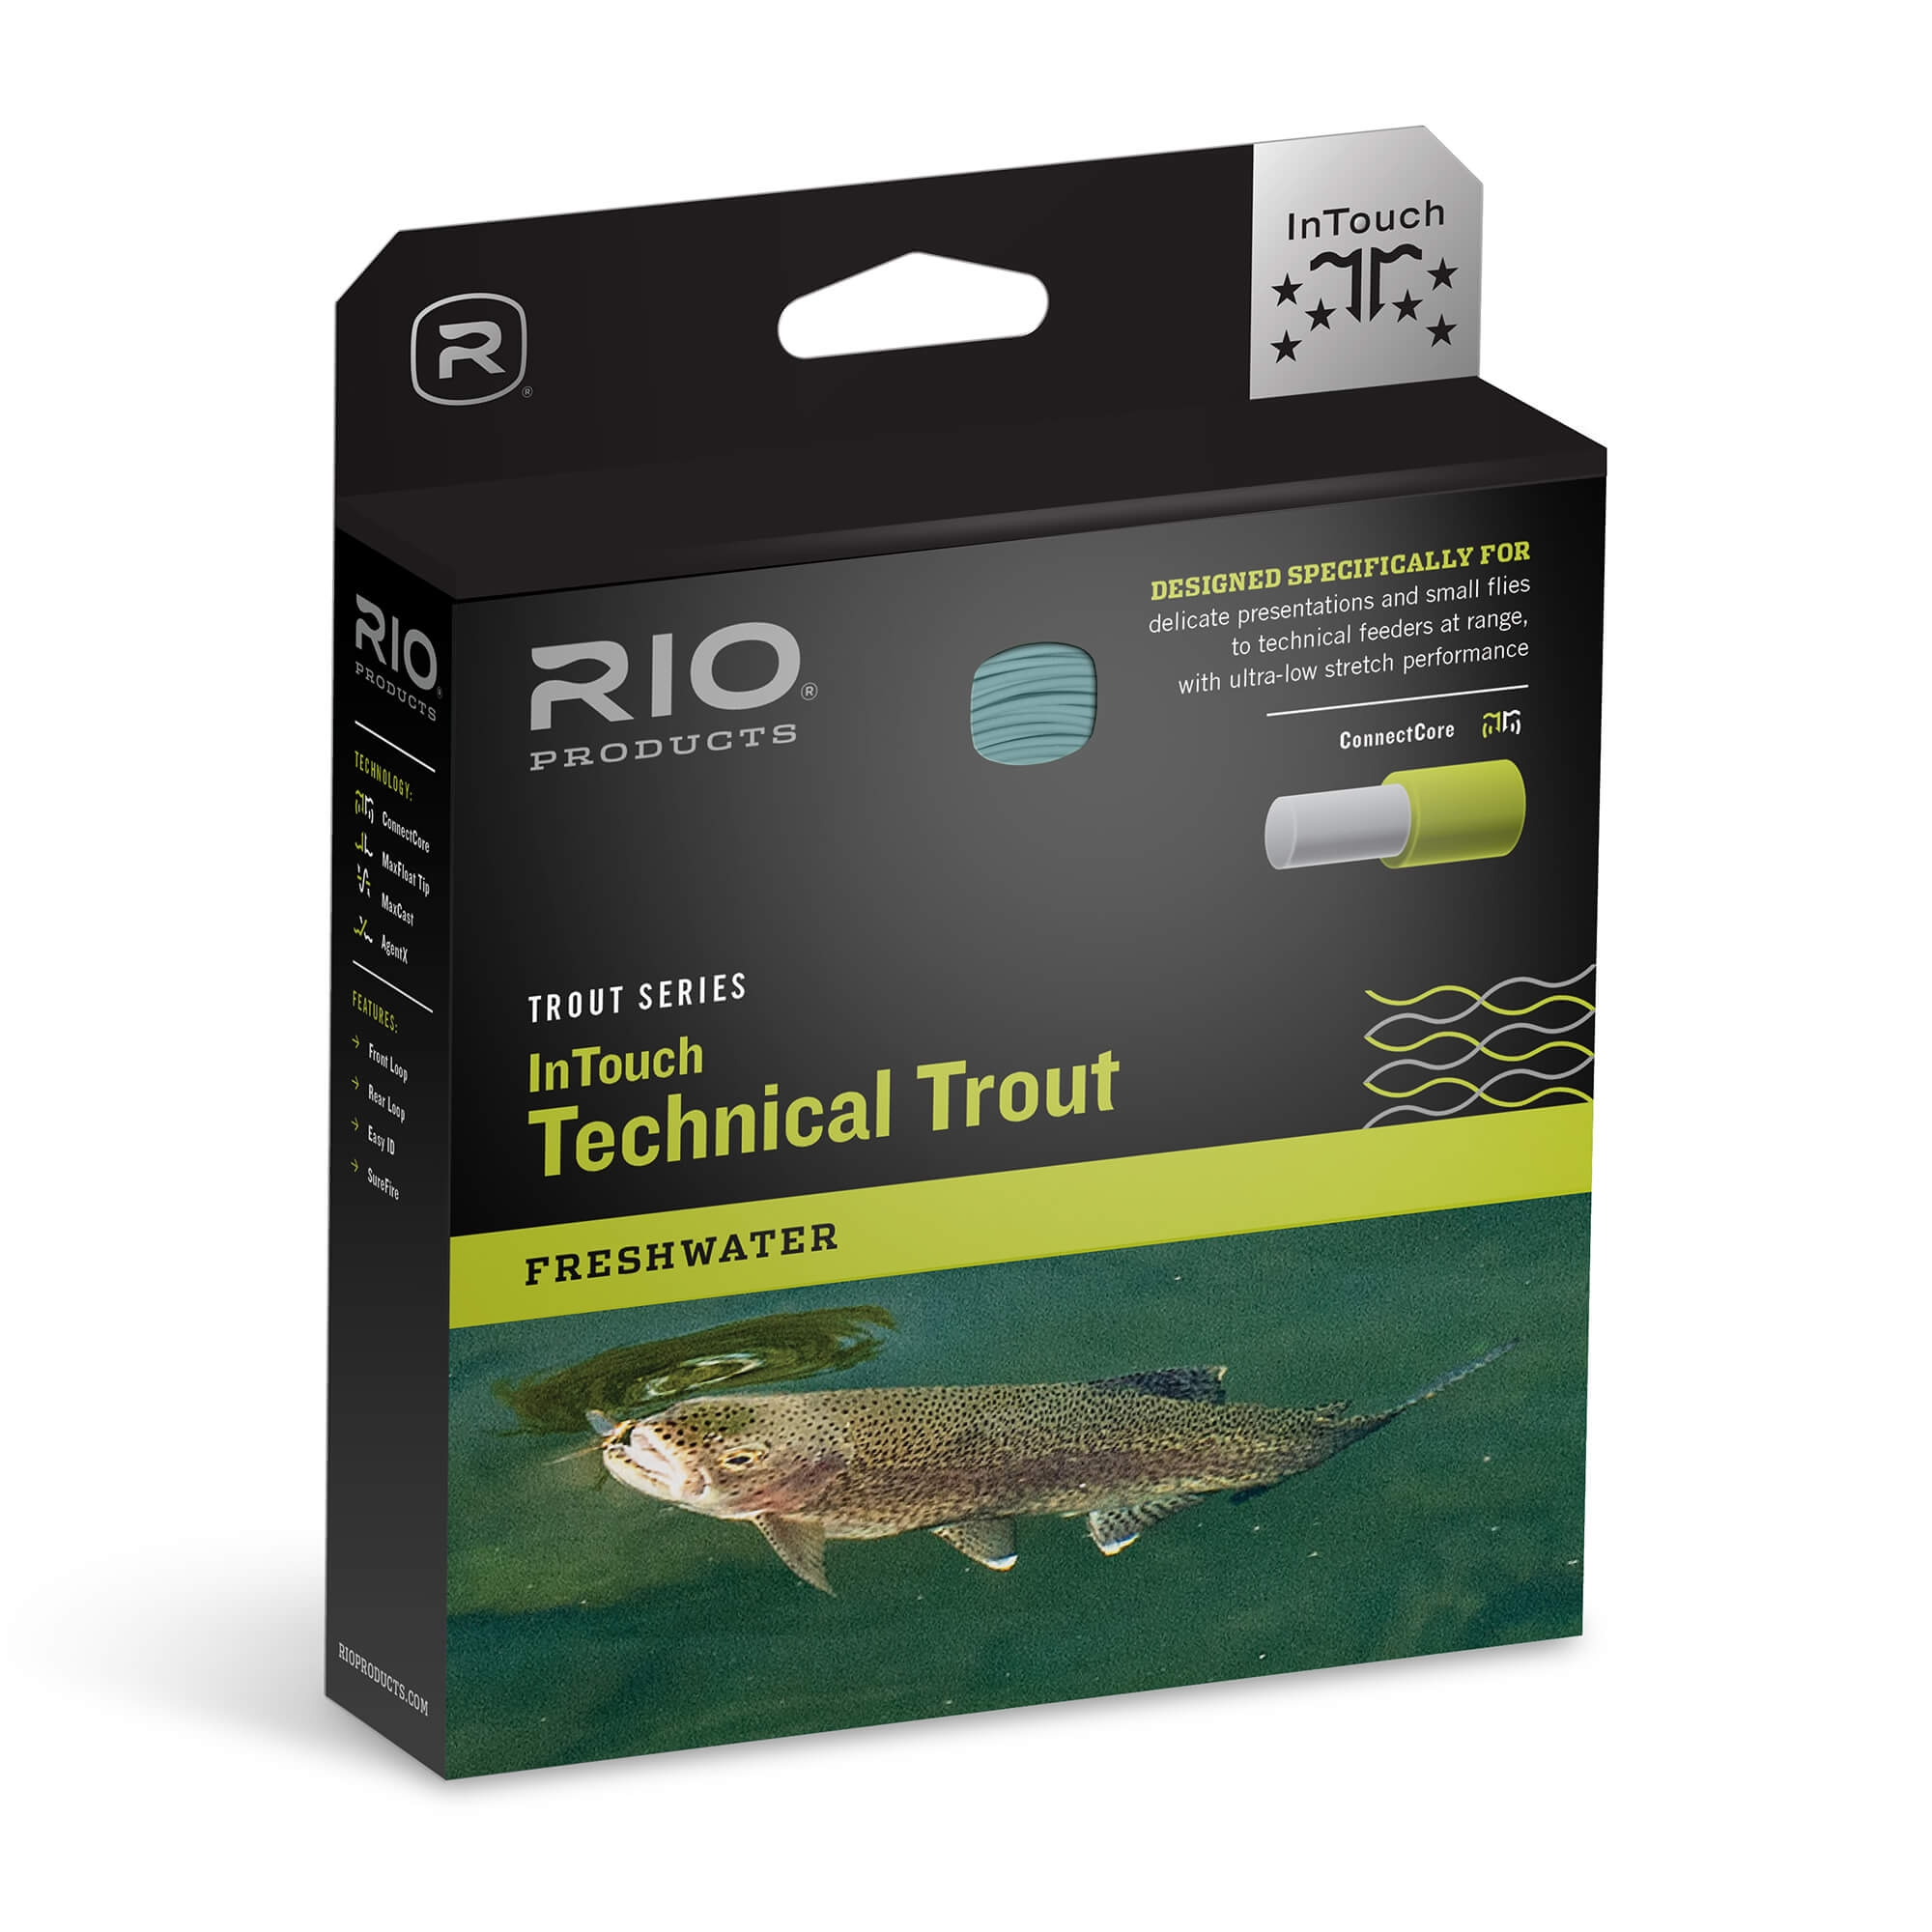 Intouch Technical Trout